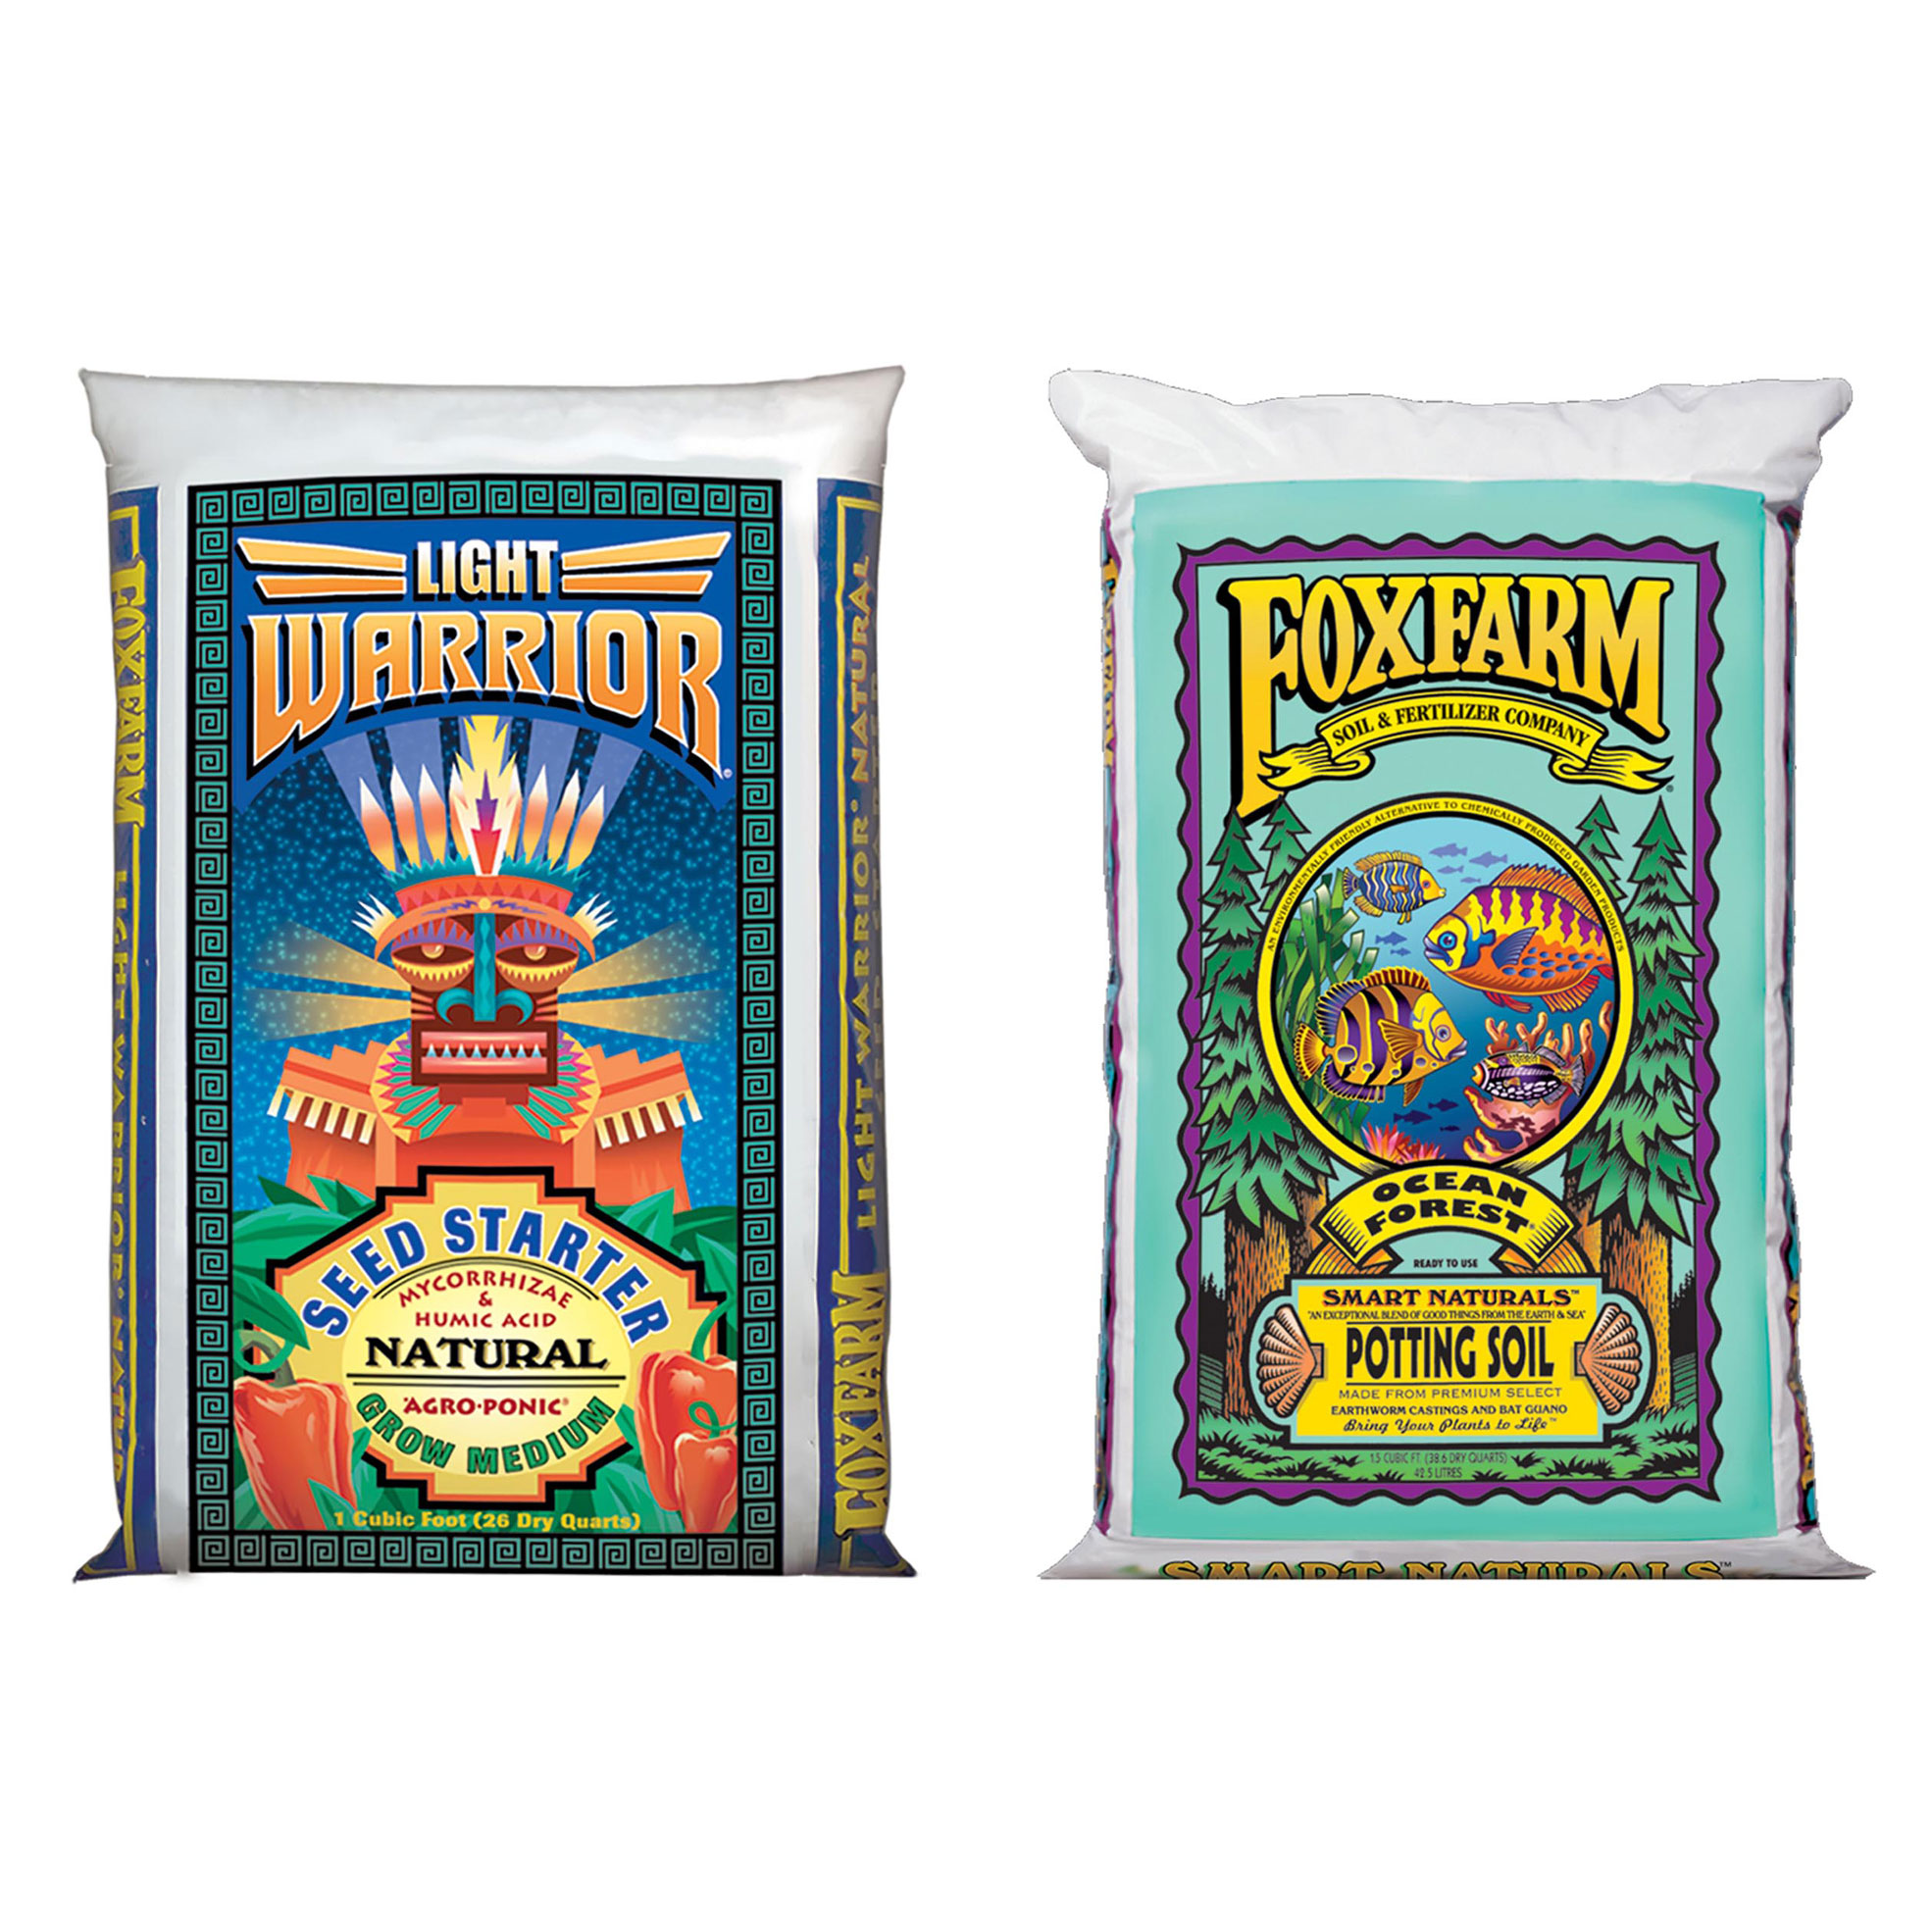 FoxFarm Seed Germinator Mix, 26 Quarts and Garden Potting Soil Mix, 40 Pounds